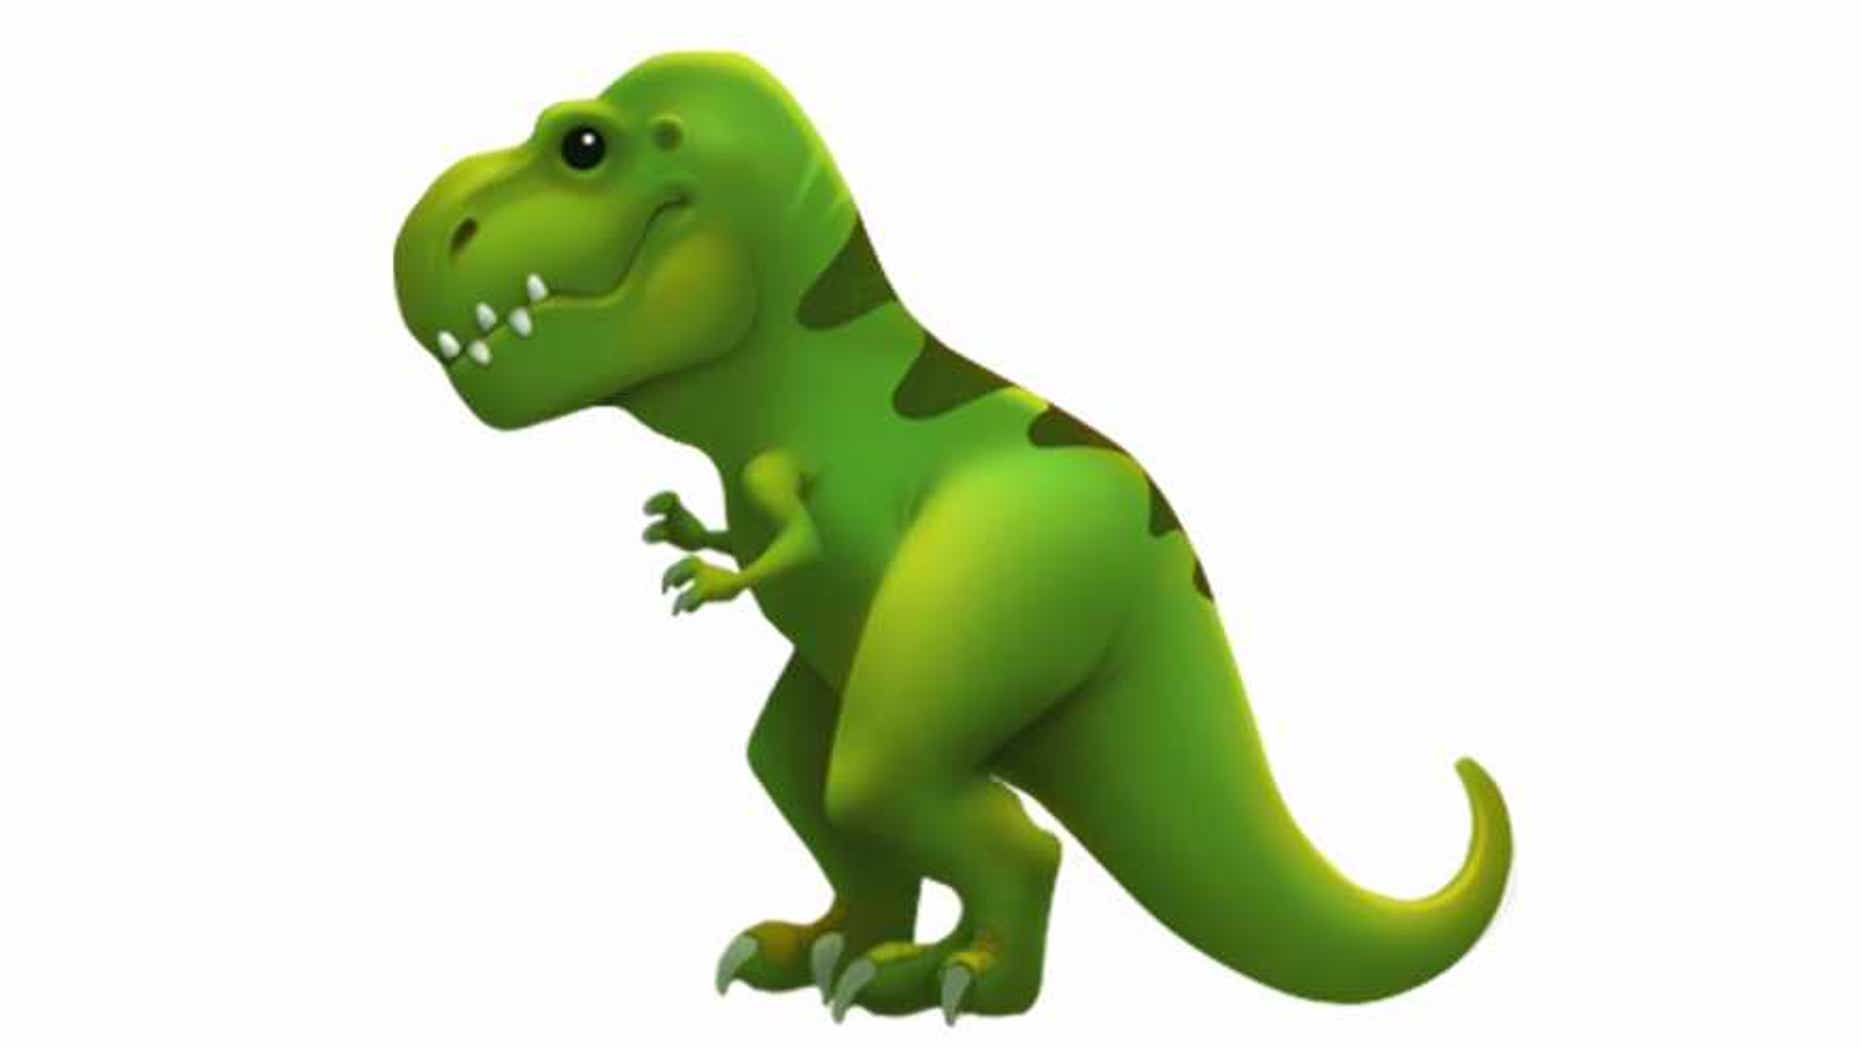 Apple is launching several new emoji soon, including one of a T. Rex. (Credit: Apple)